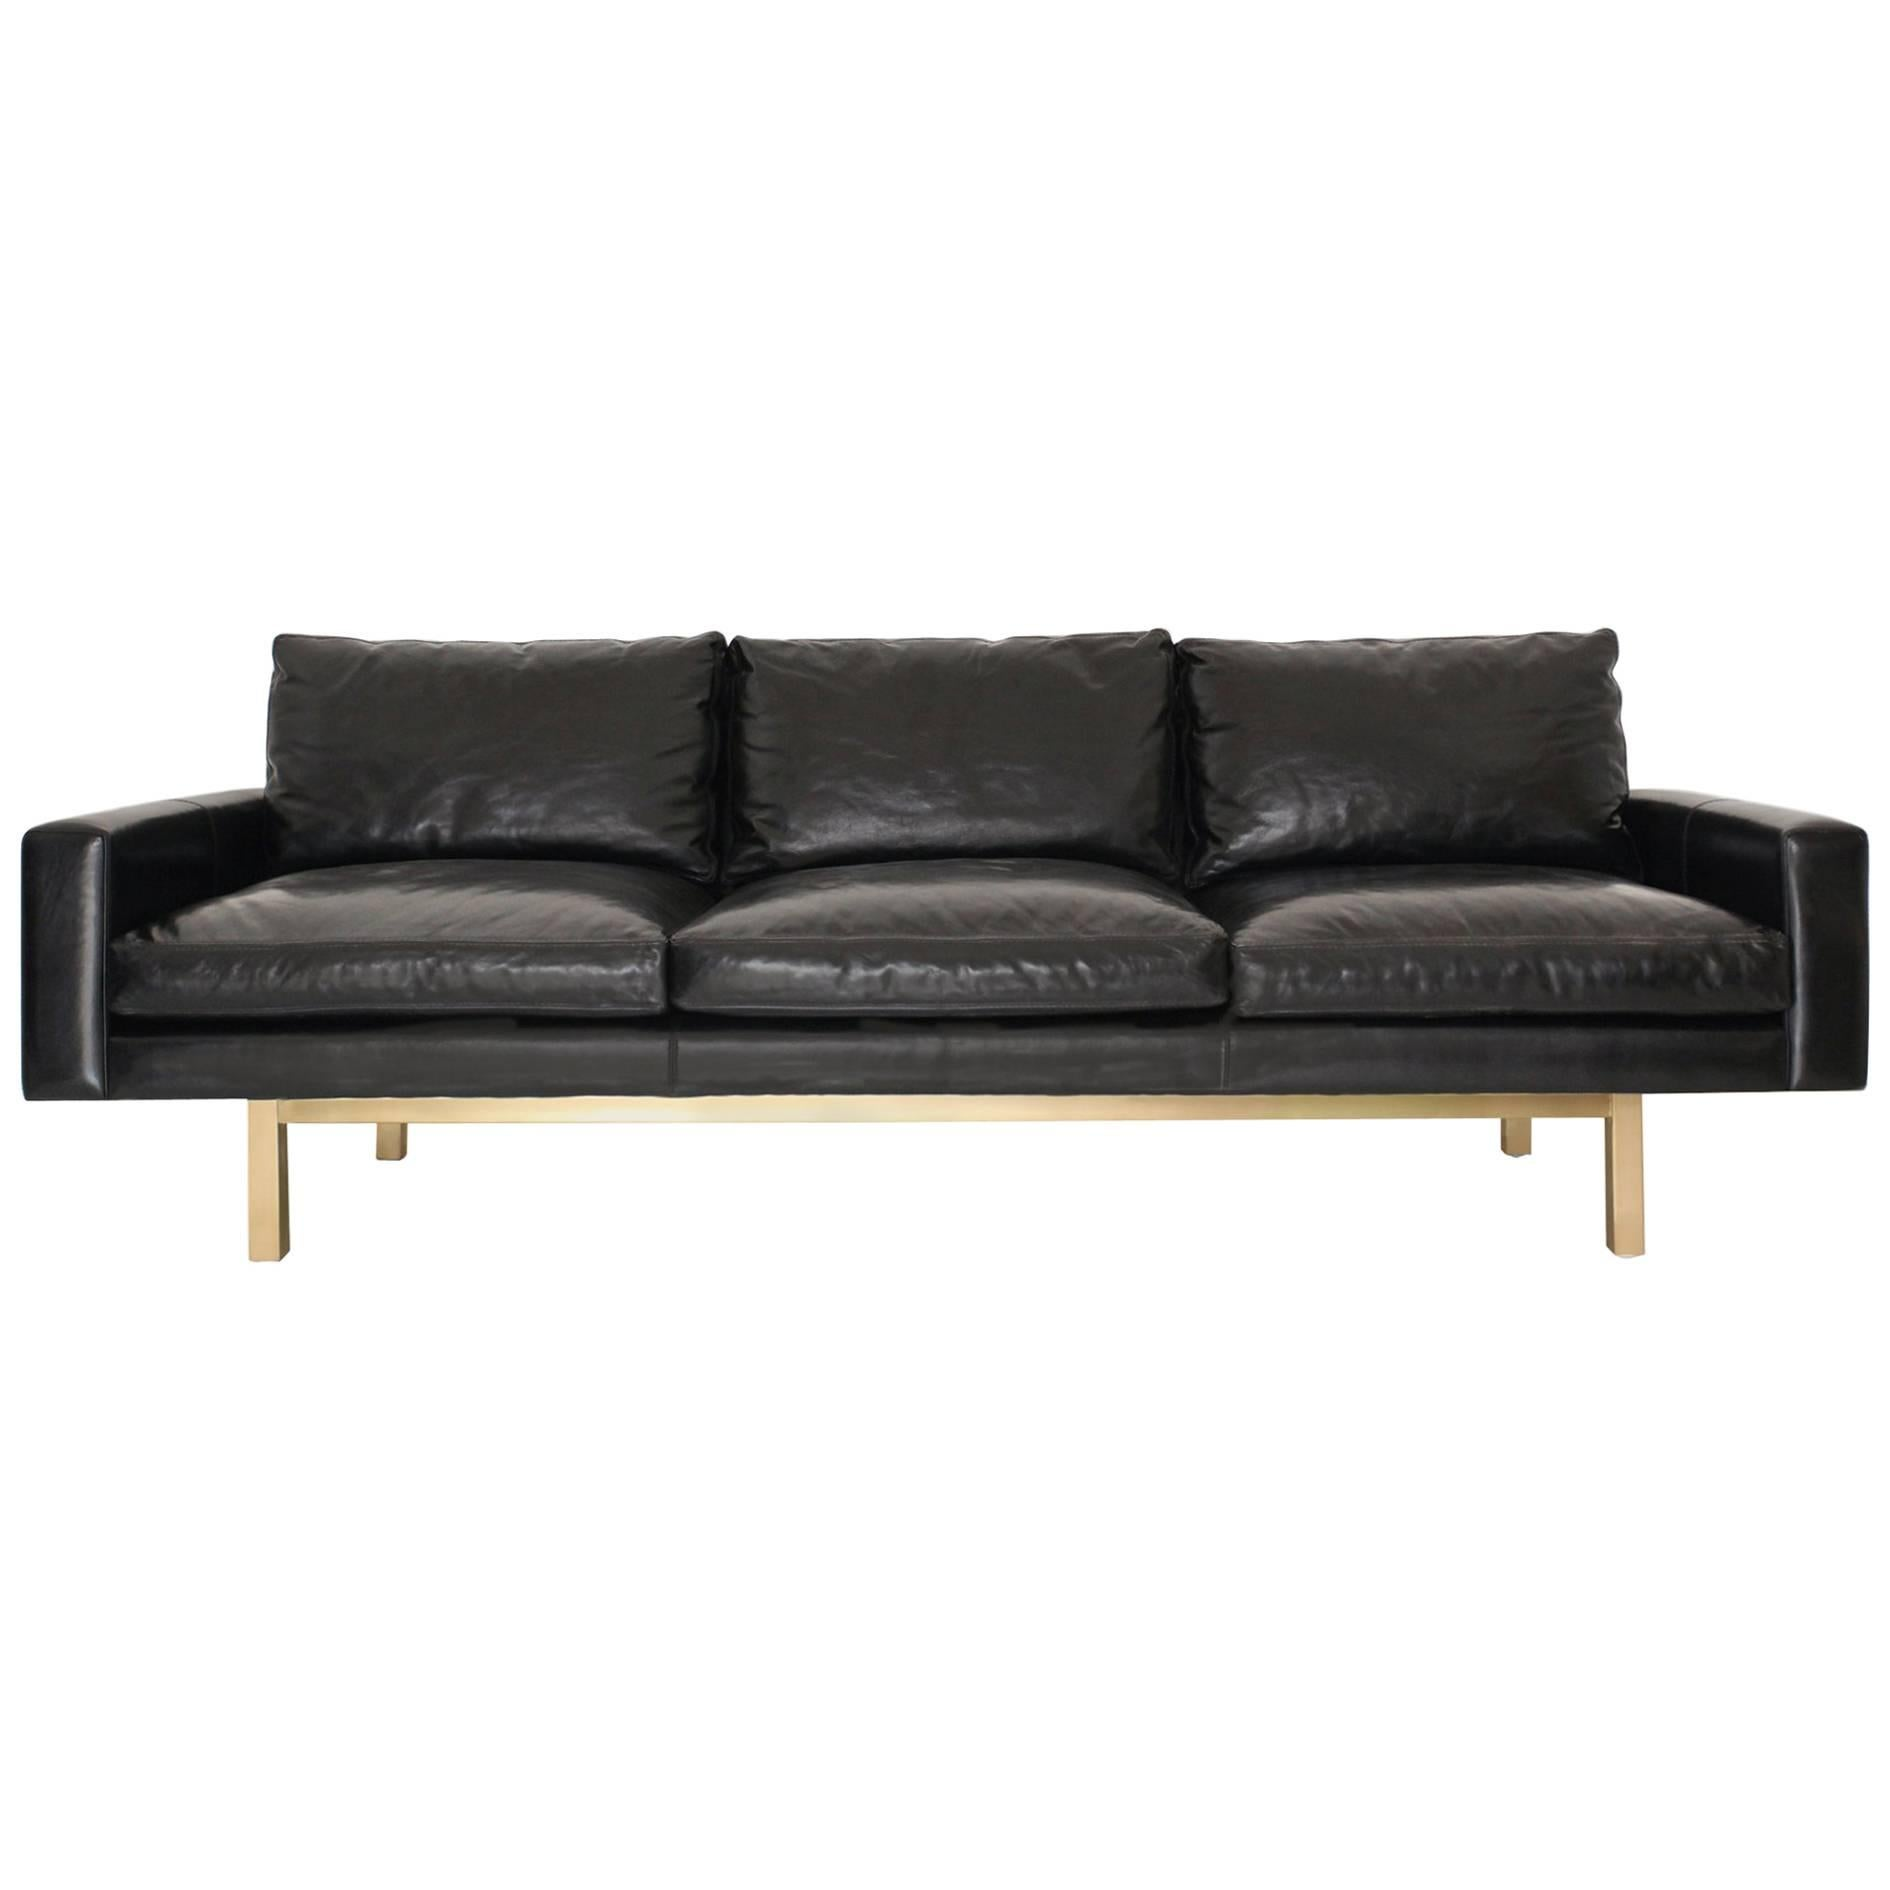 Contemporary Medium Standard Sofa in Black Leather with Brass Base